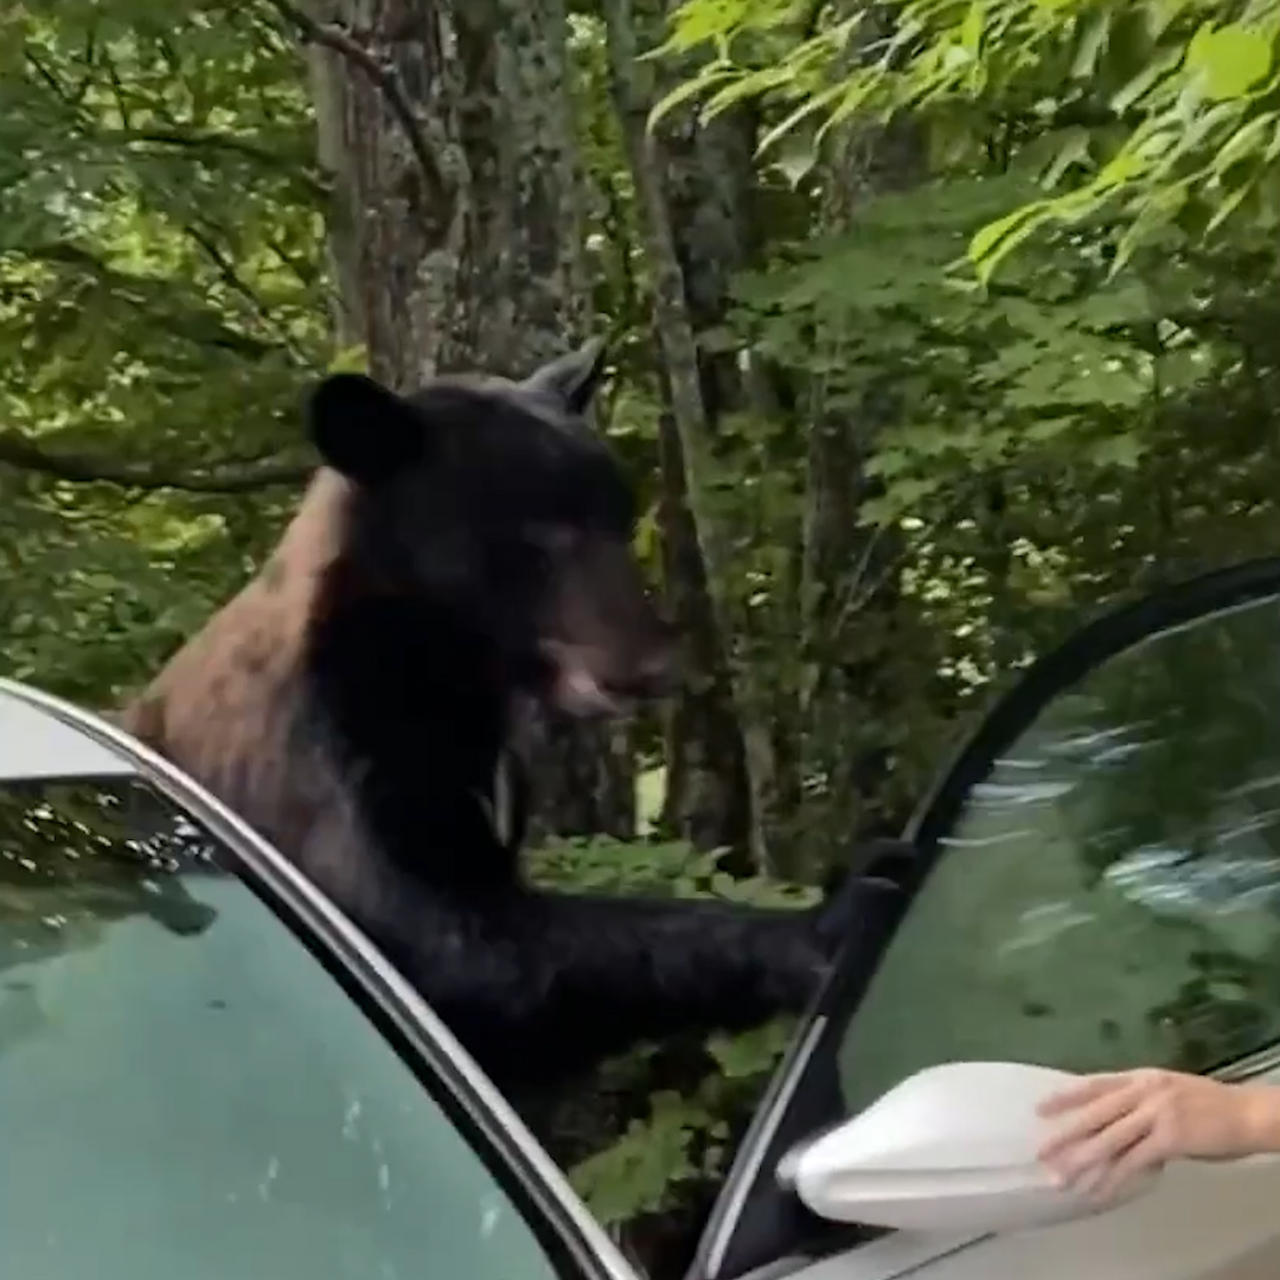 Tennessee man bravely releases black bear who climbed inside his car